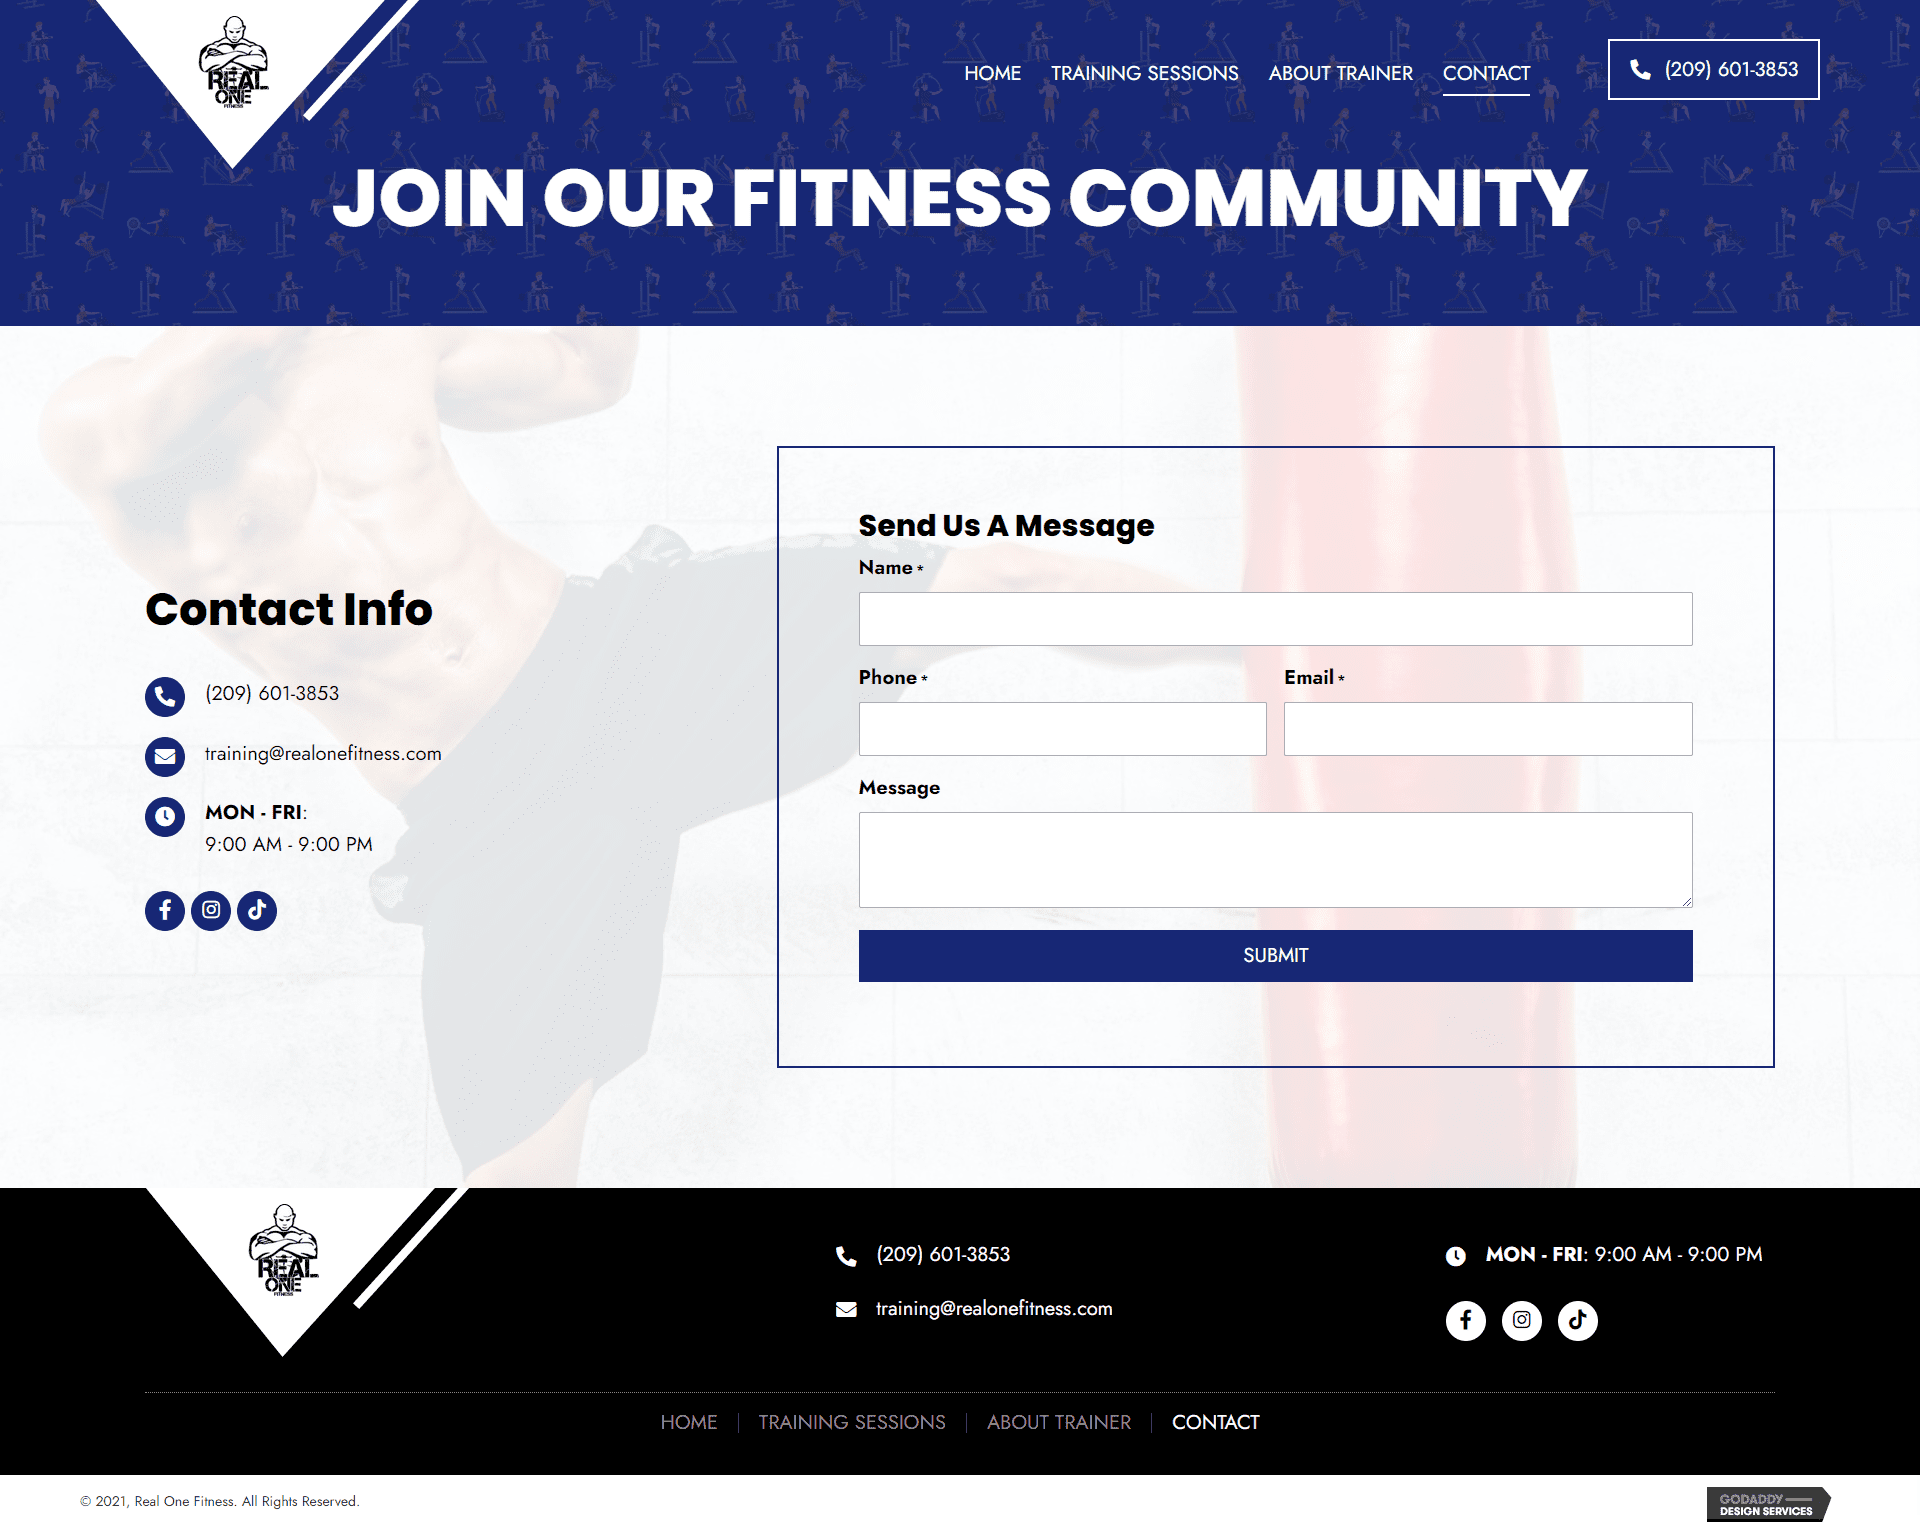 Real One Fitness Contact